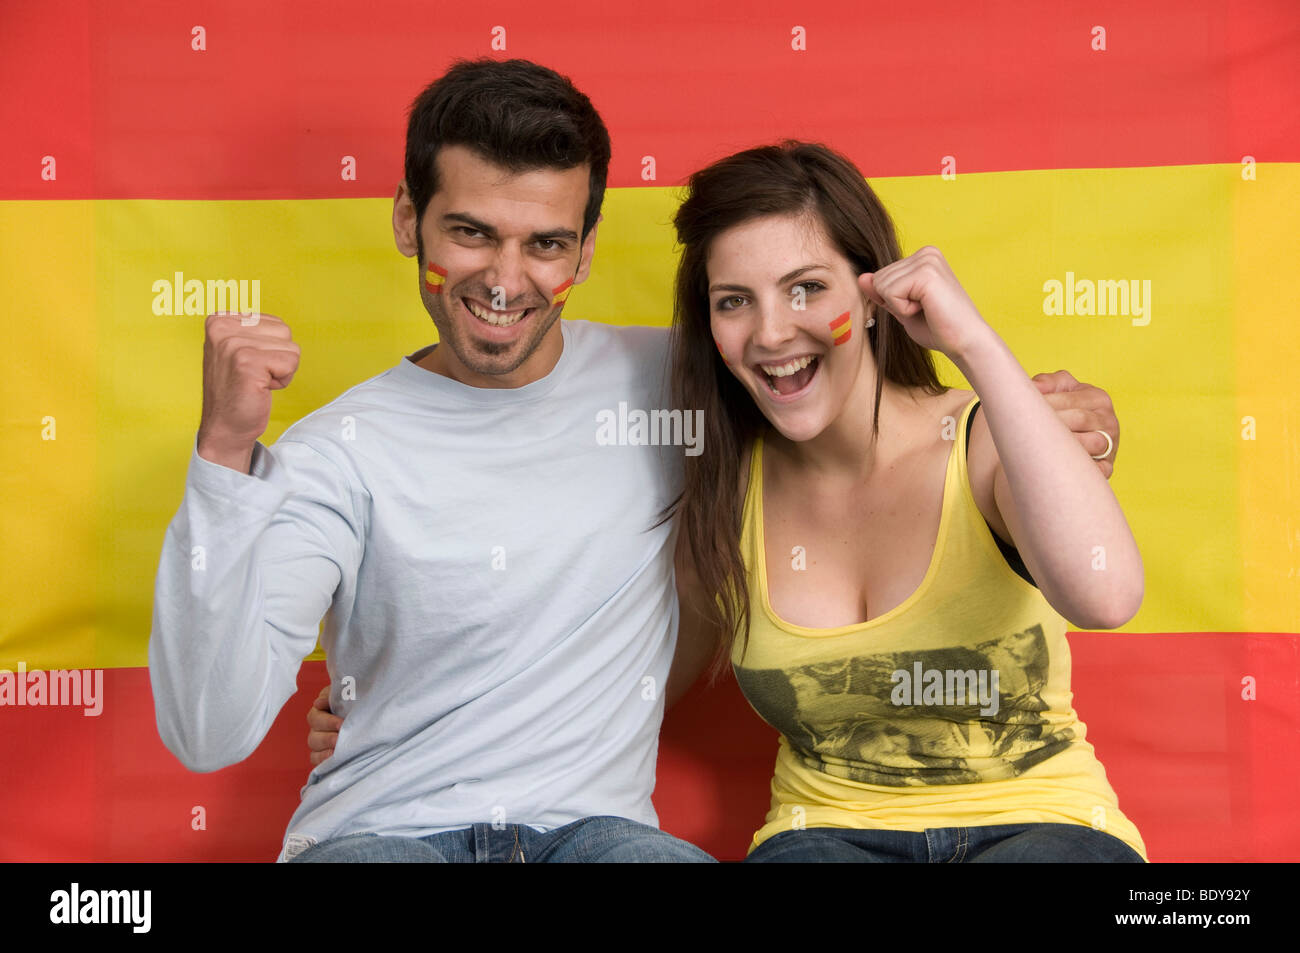 Couple smiling with Spanish flag - Stock Image